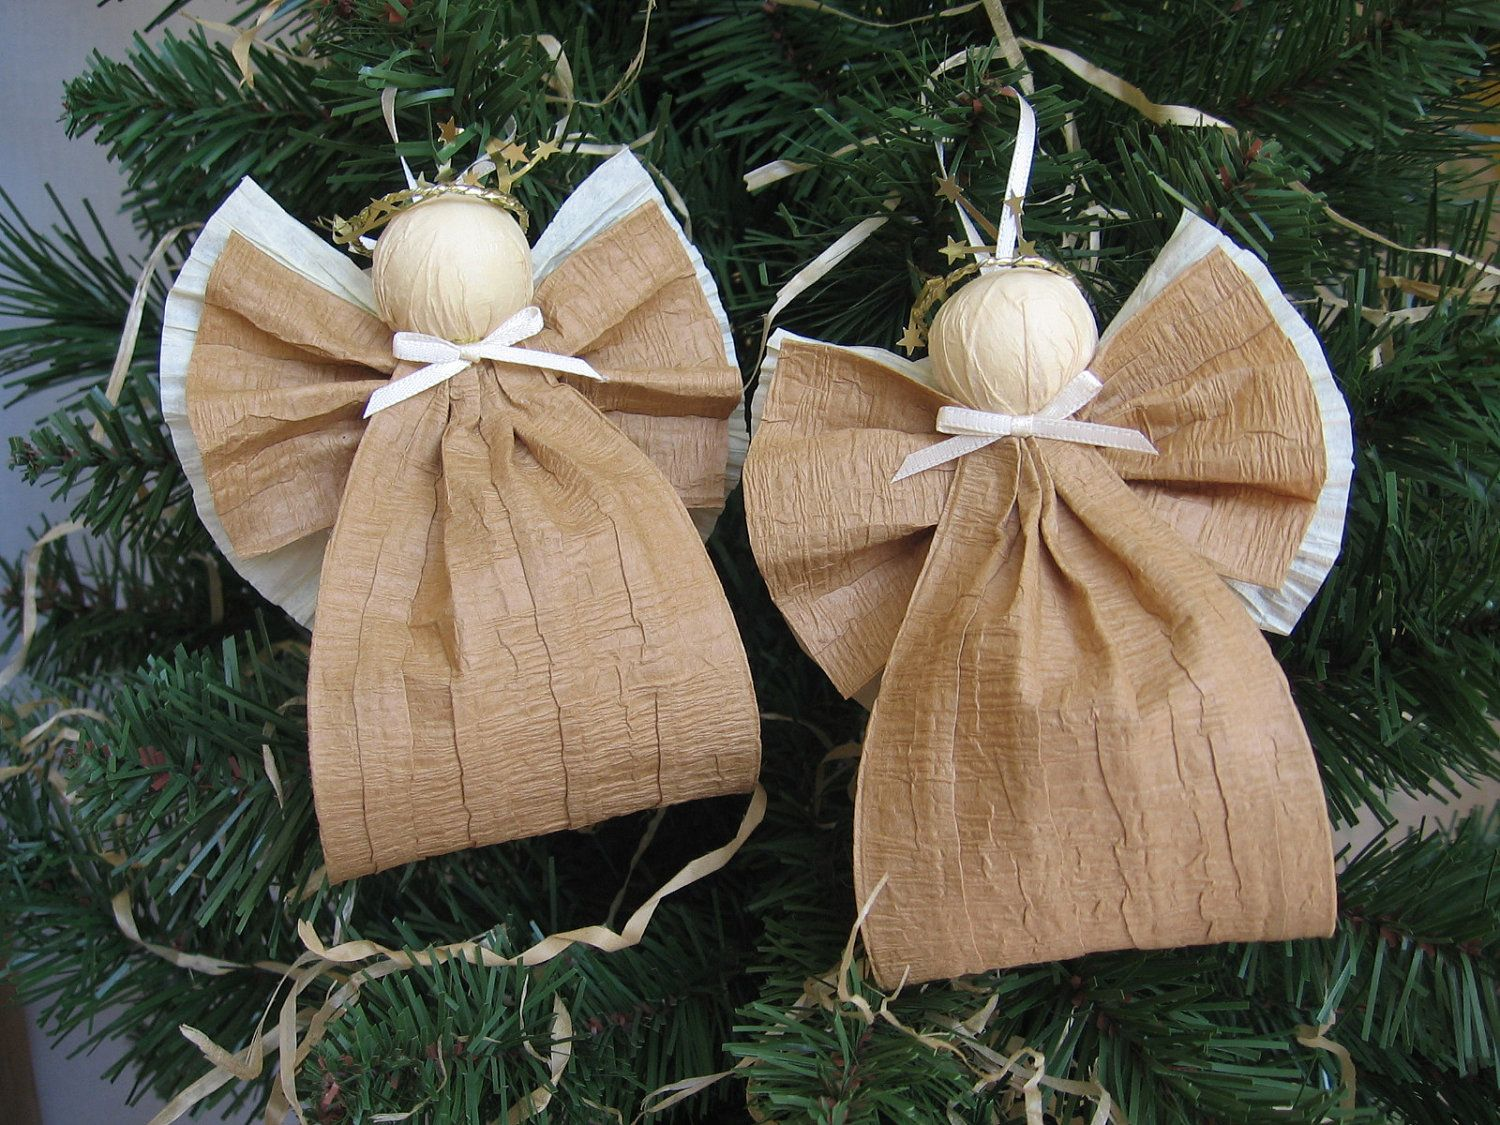 Angel Christmas Ornaments Kraft Paper Ribbon Angel Tree Christmas Ornament Crafts Diy Christmas Ornaments Christmas Tree Ornaments To Make